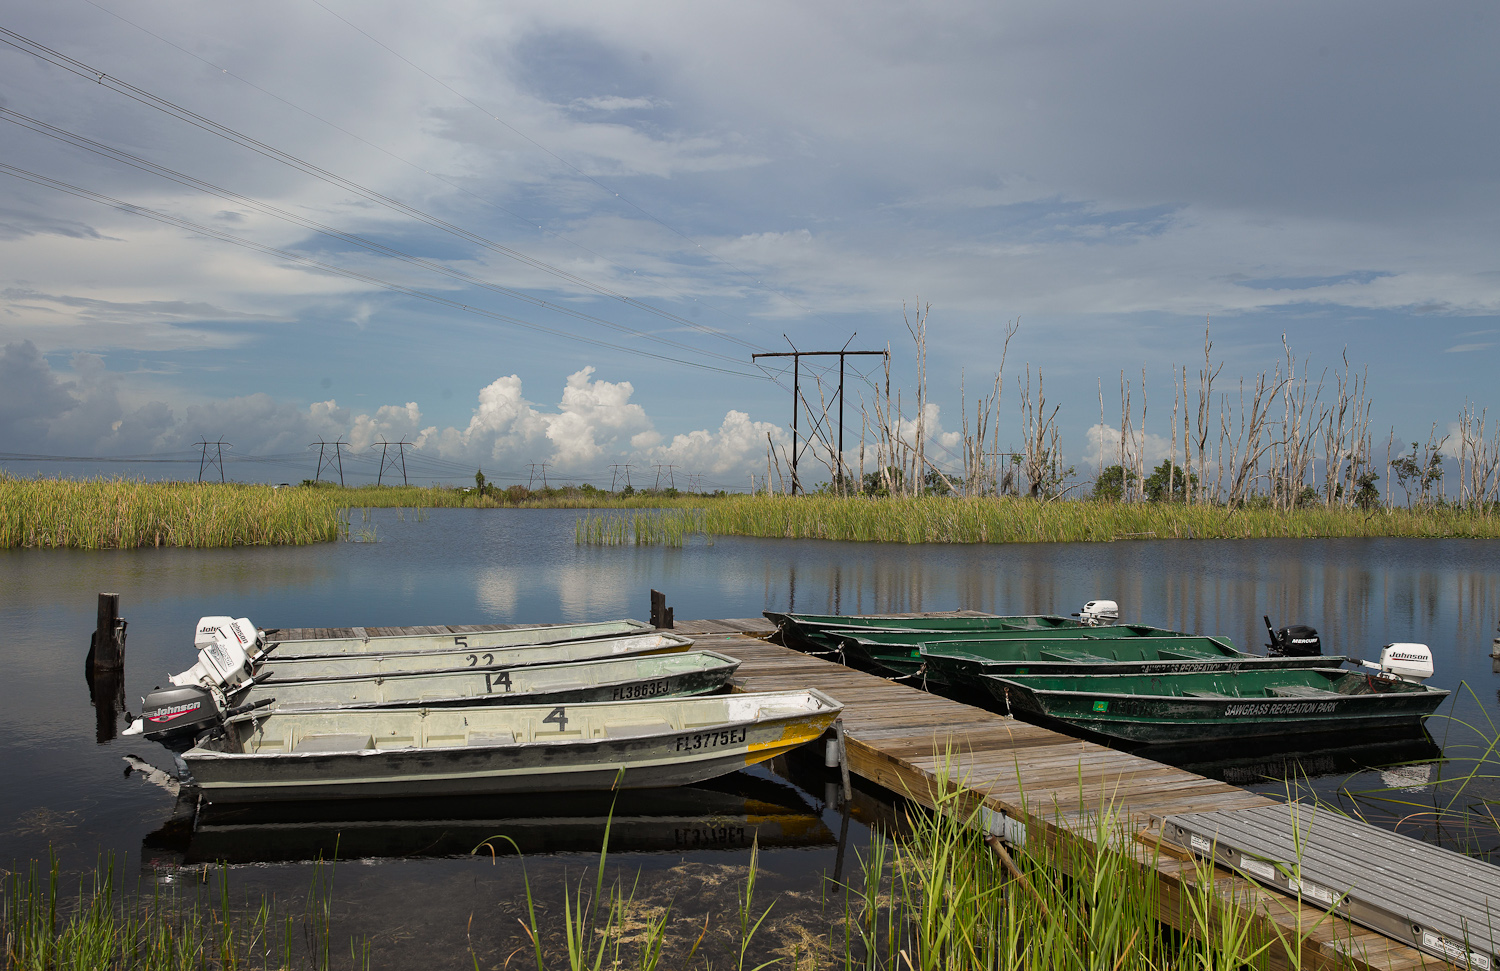 Boats - Everglades, Florida, 2007